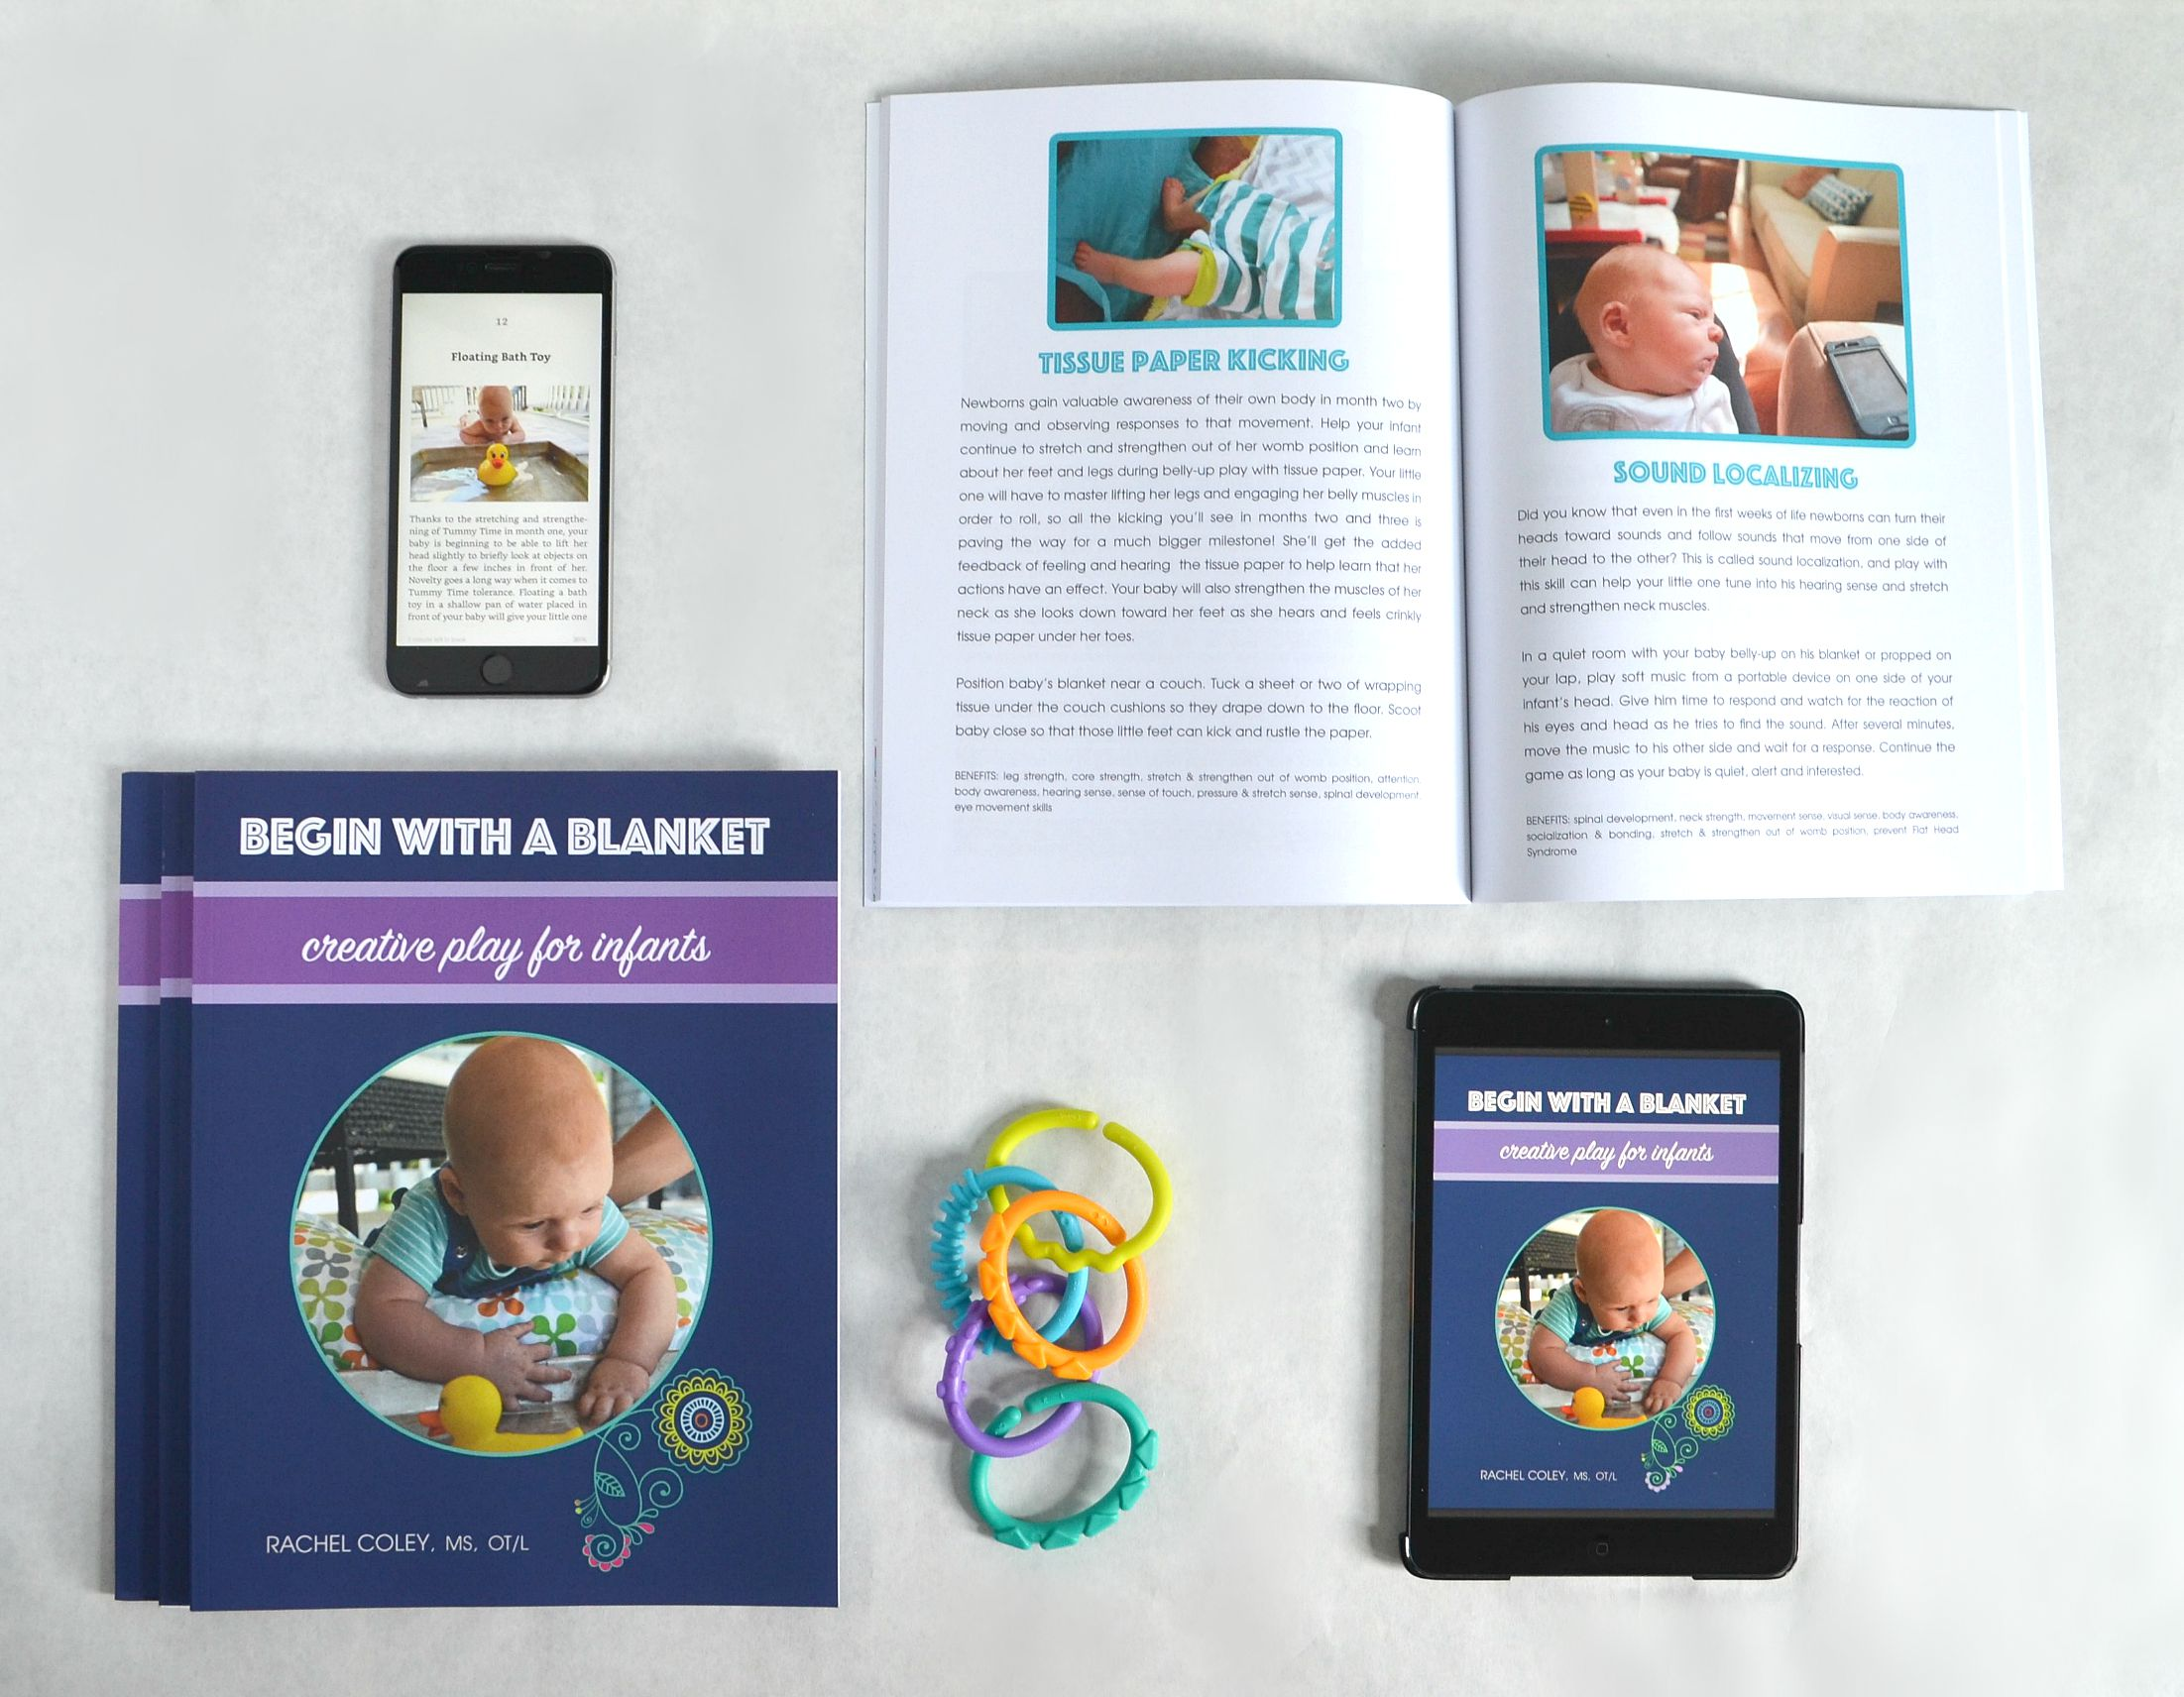 Learn to play with your newborn in creative and simple ways. CanDoKiddo.com